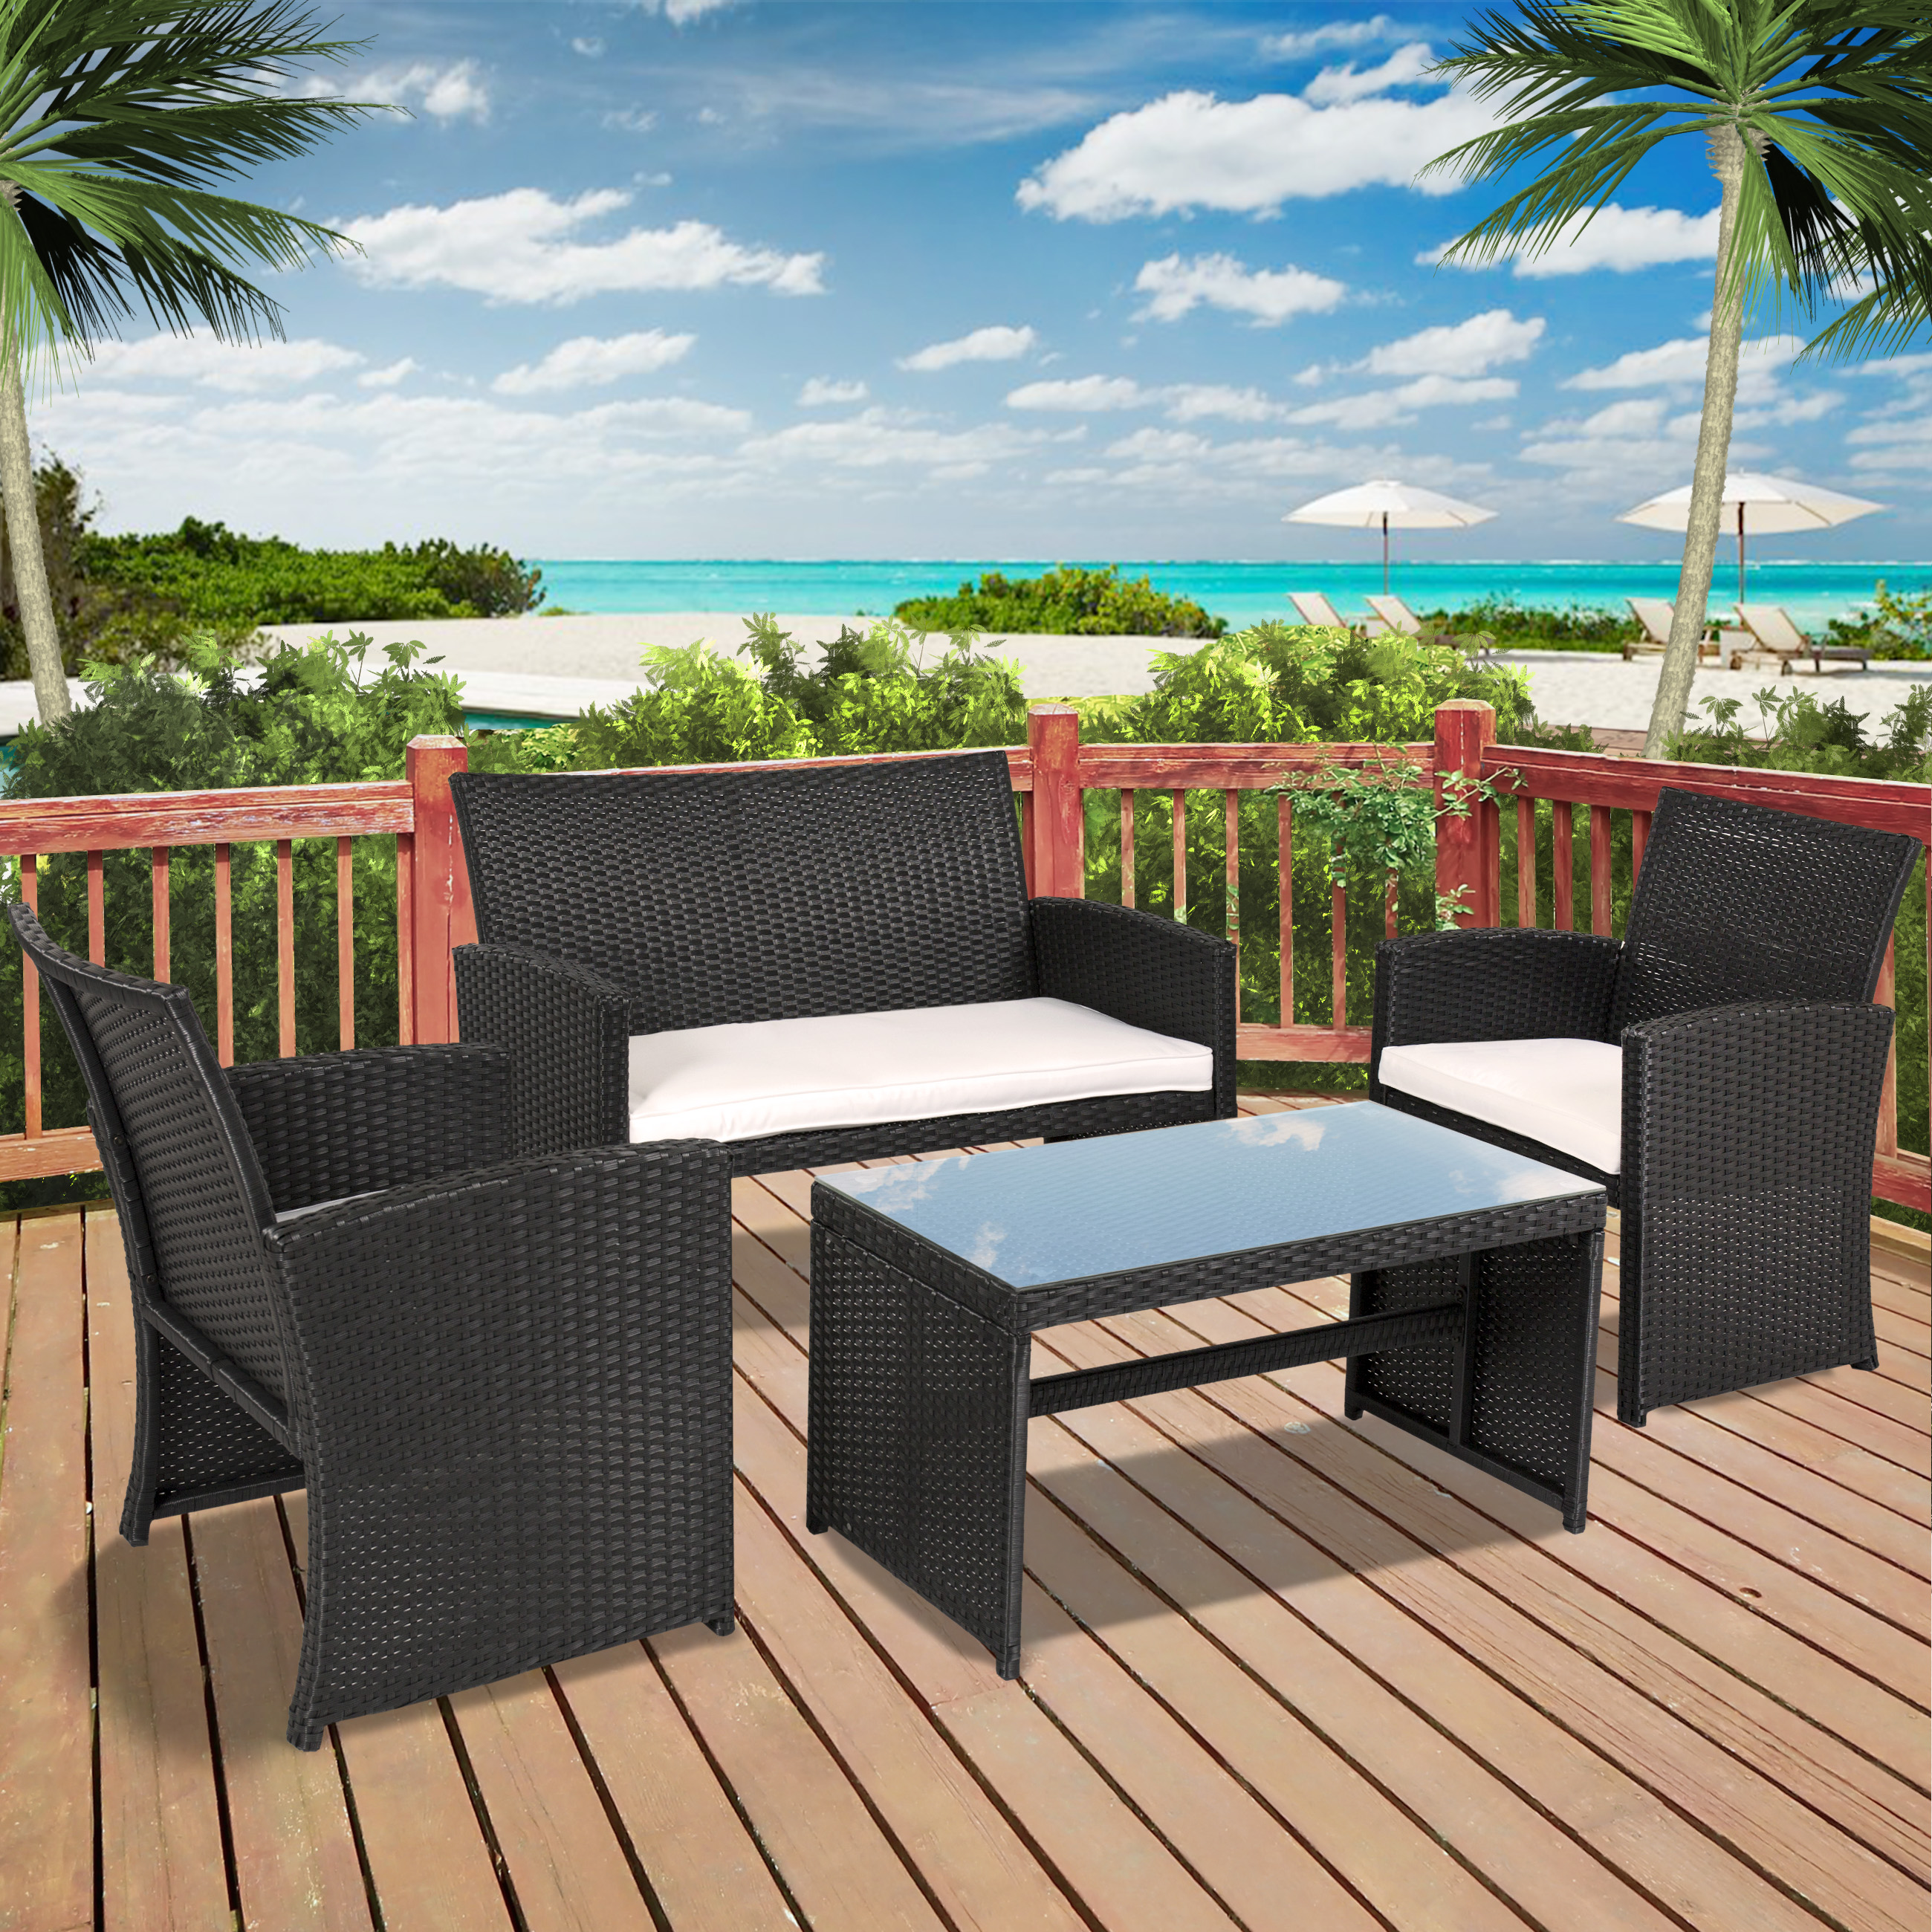 Click here to buy Best Choice Products Outdoor Garden Patio 4pc Cushioned Seat Black Wicker Sofa Furniture Set.